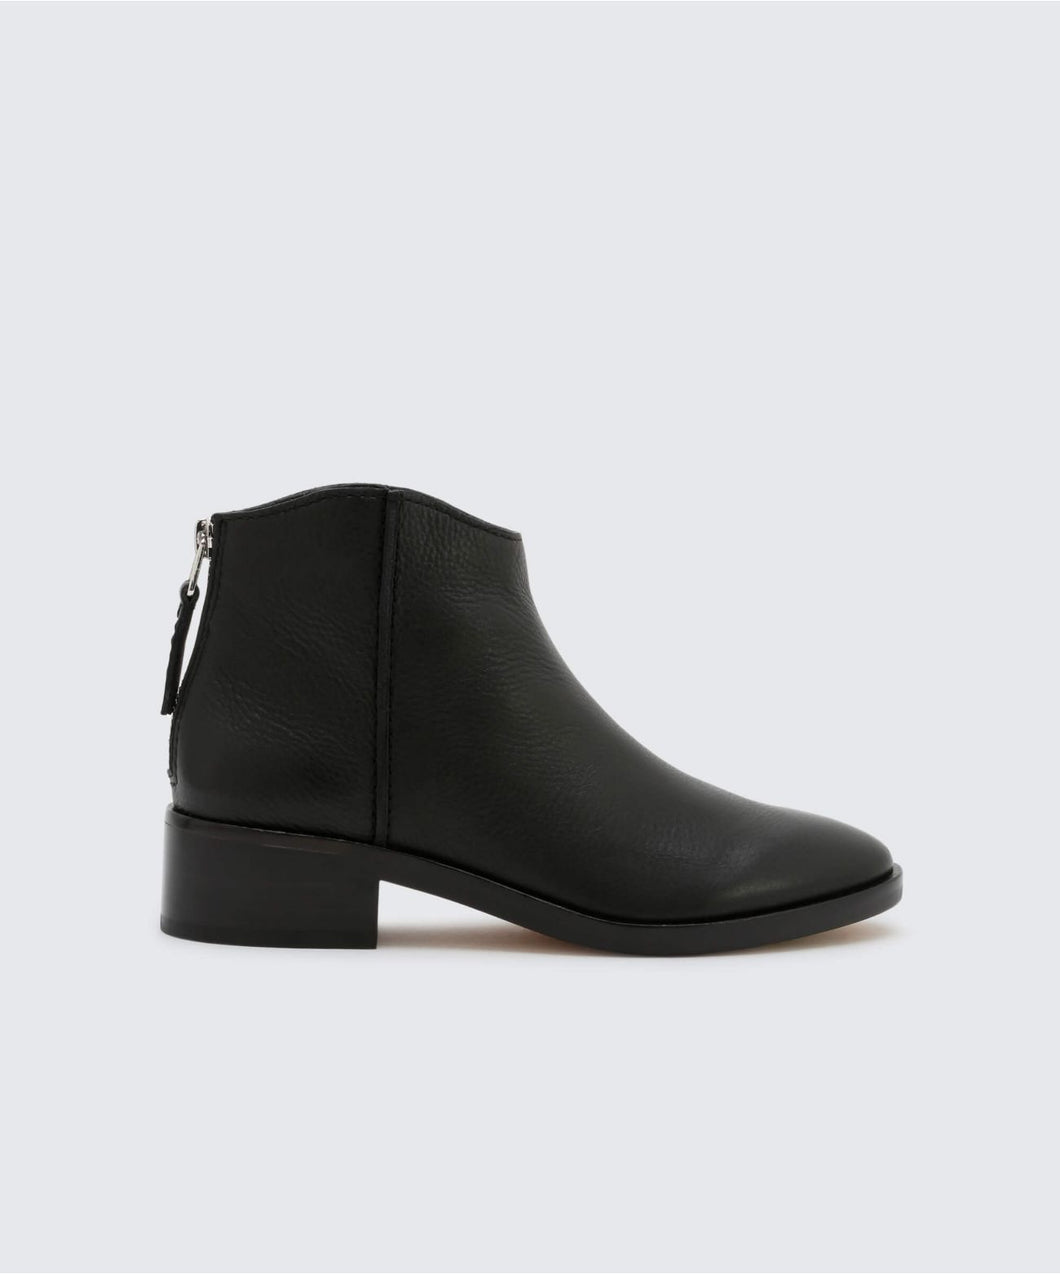 TUCKER BOOTIES IN BLACK -   Dolce Vita